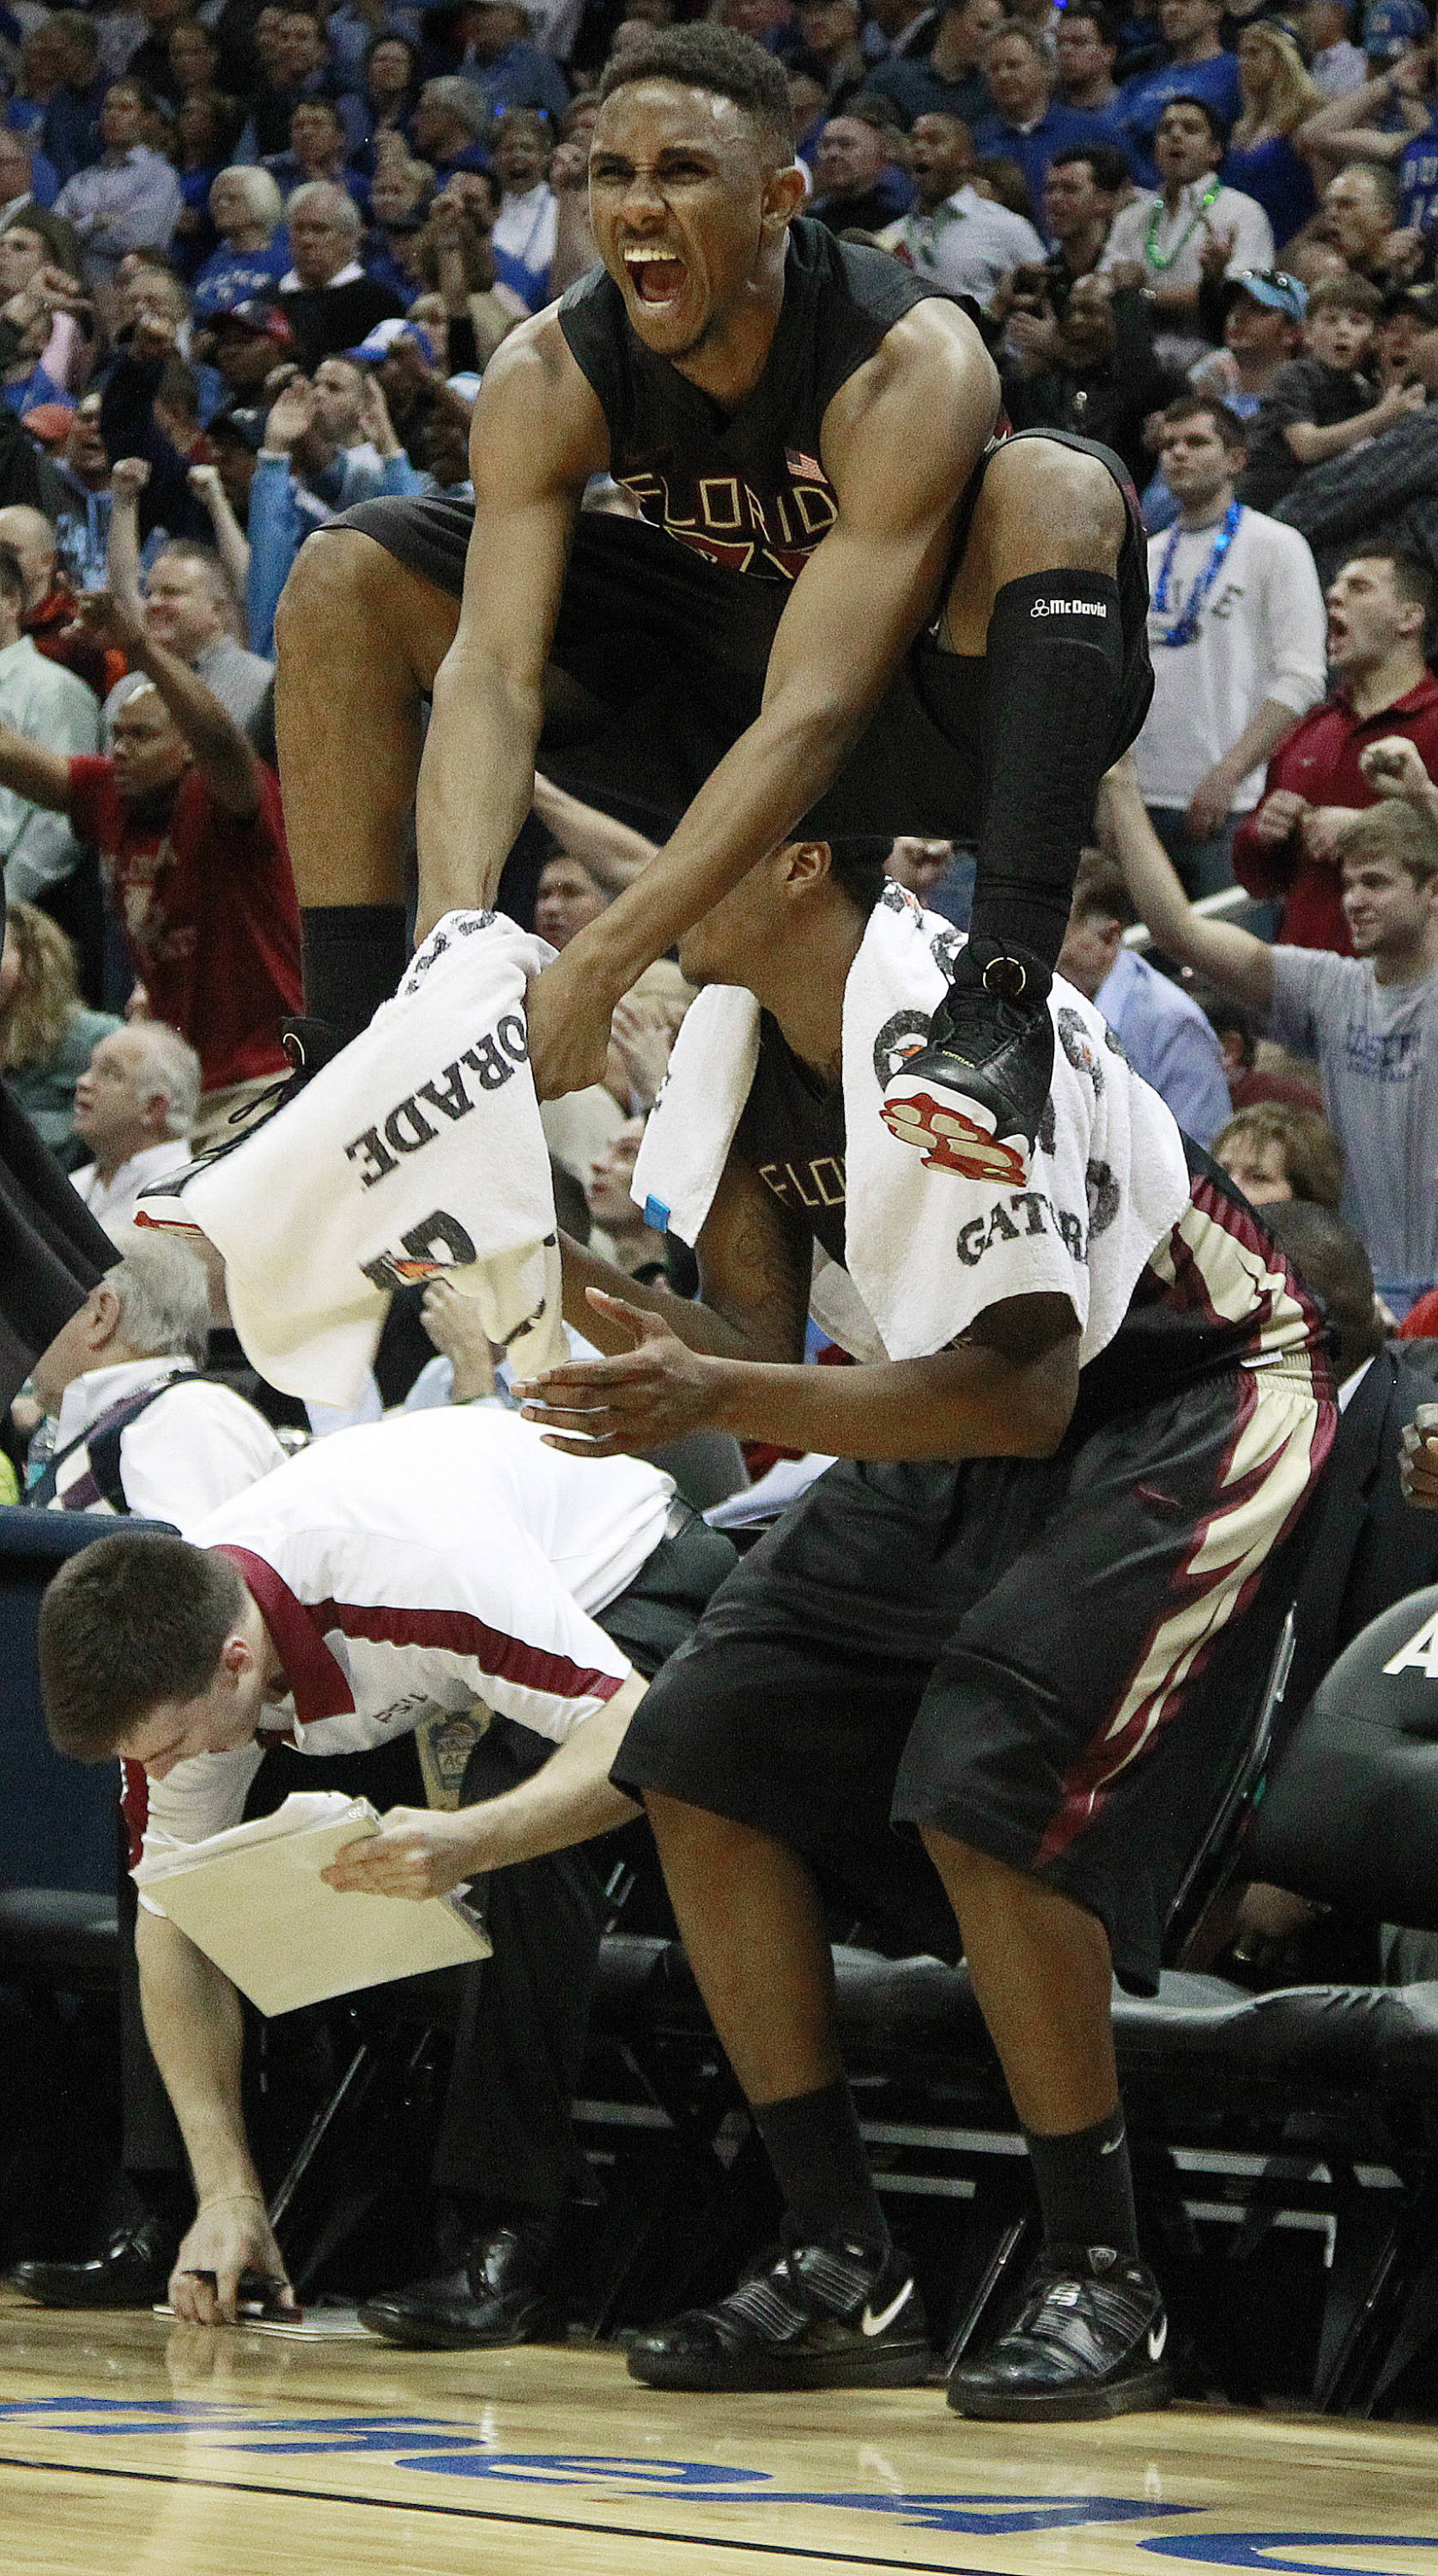 Florida State guard Ian Miller (30) reacts on the sideline after teammate Luke Loucks scored a basket against Duke during the second half of an NCAA college basketball game in the semifinals of the Atlantic Coast Conference tournament, Saturday, March 10, 2012, in Atlanta. Florida State won 62-59. (AP Photo/John Bazemore)